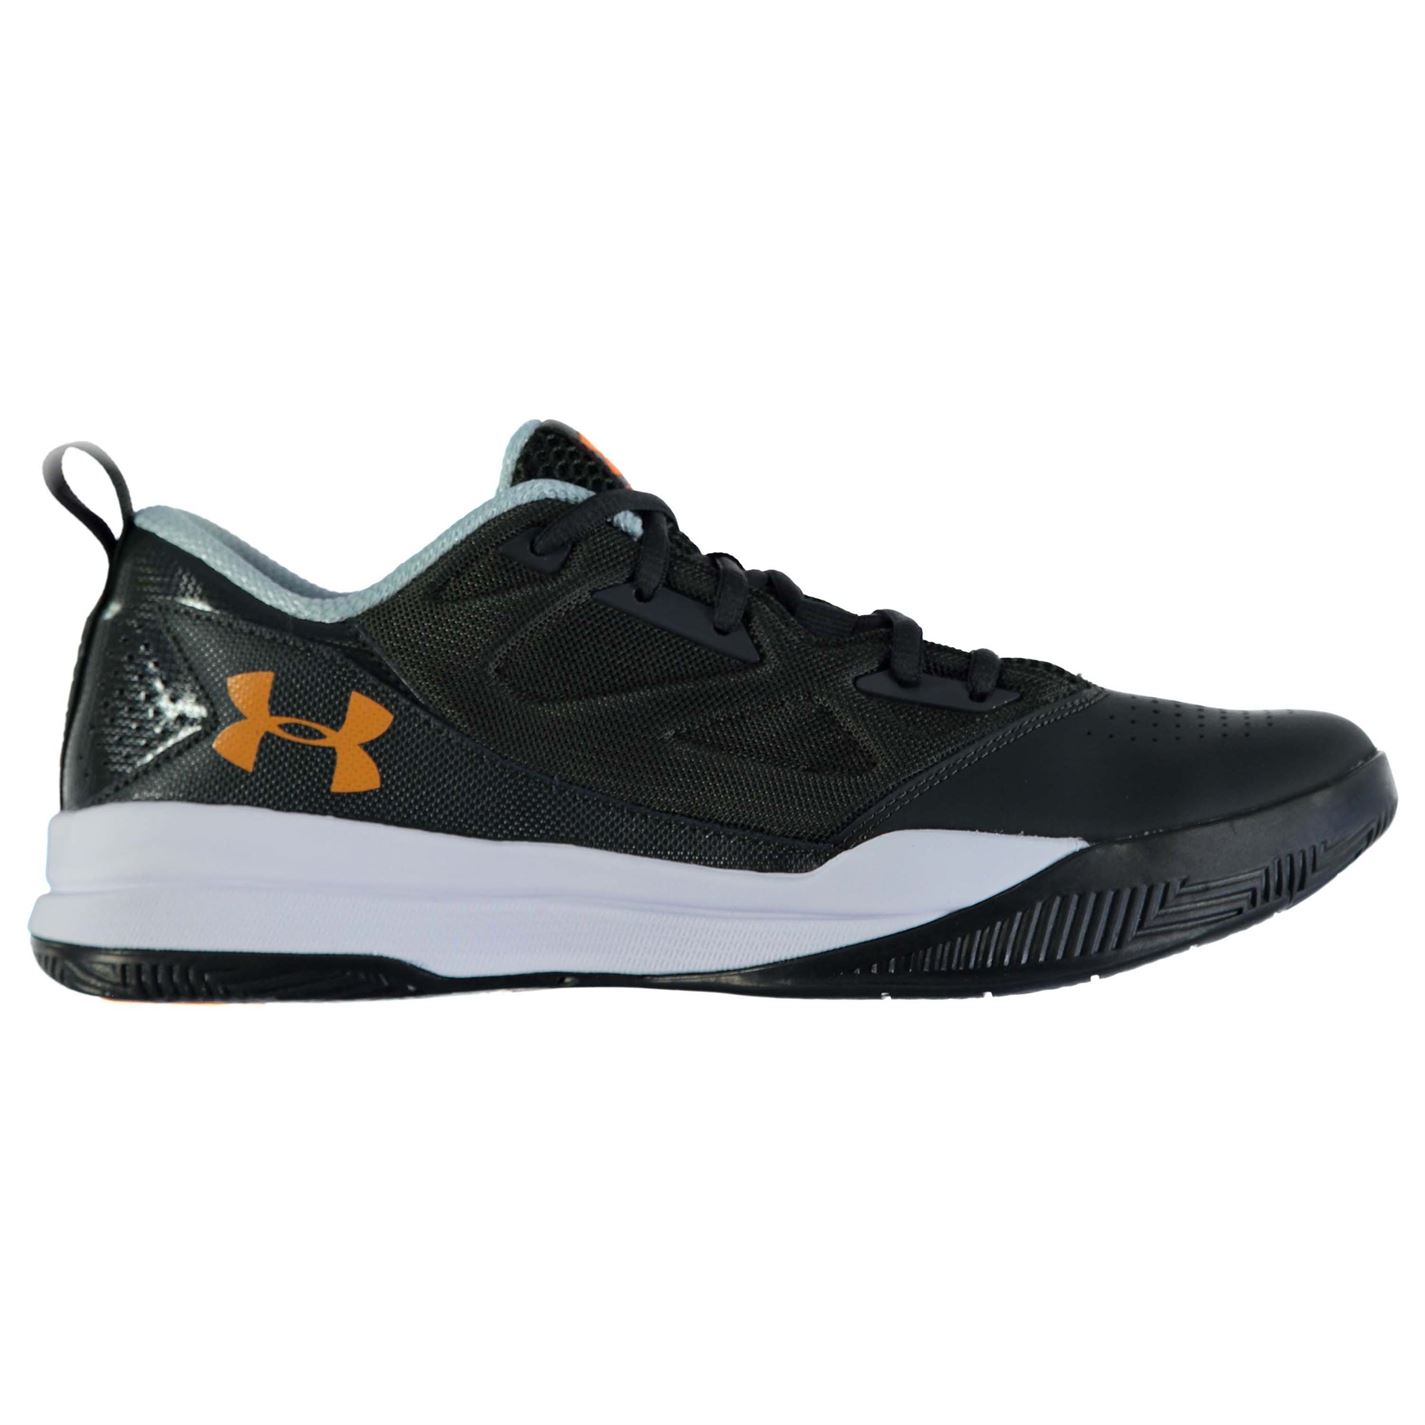 Under Armour Jet Low Sn72 Green White - Glami.sk 6356ed3417a